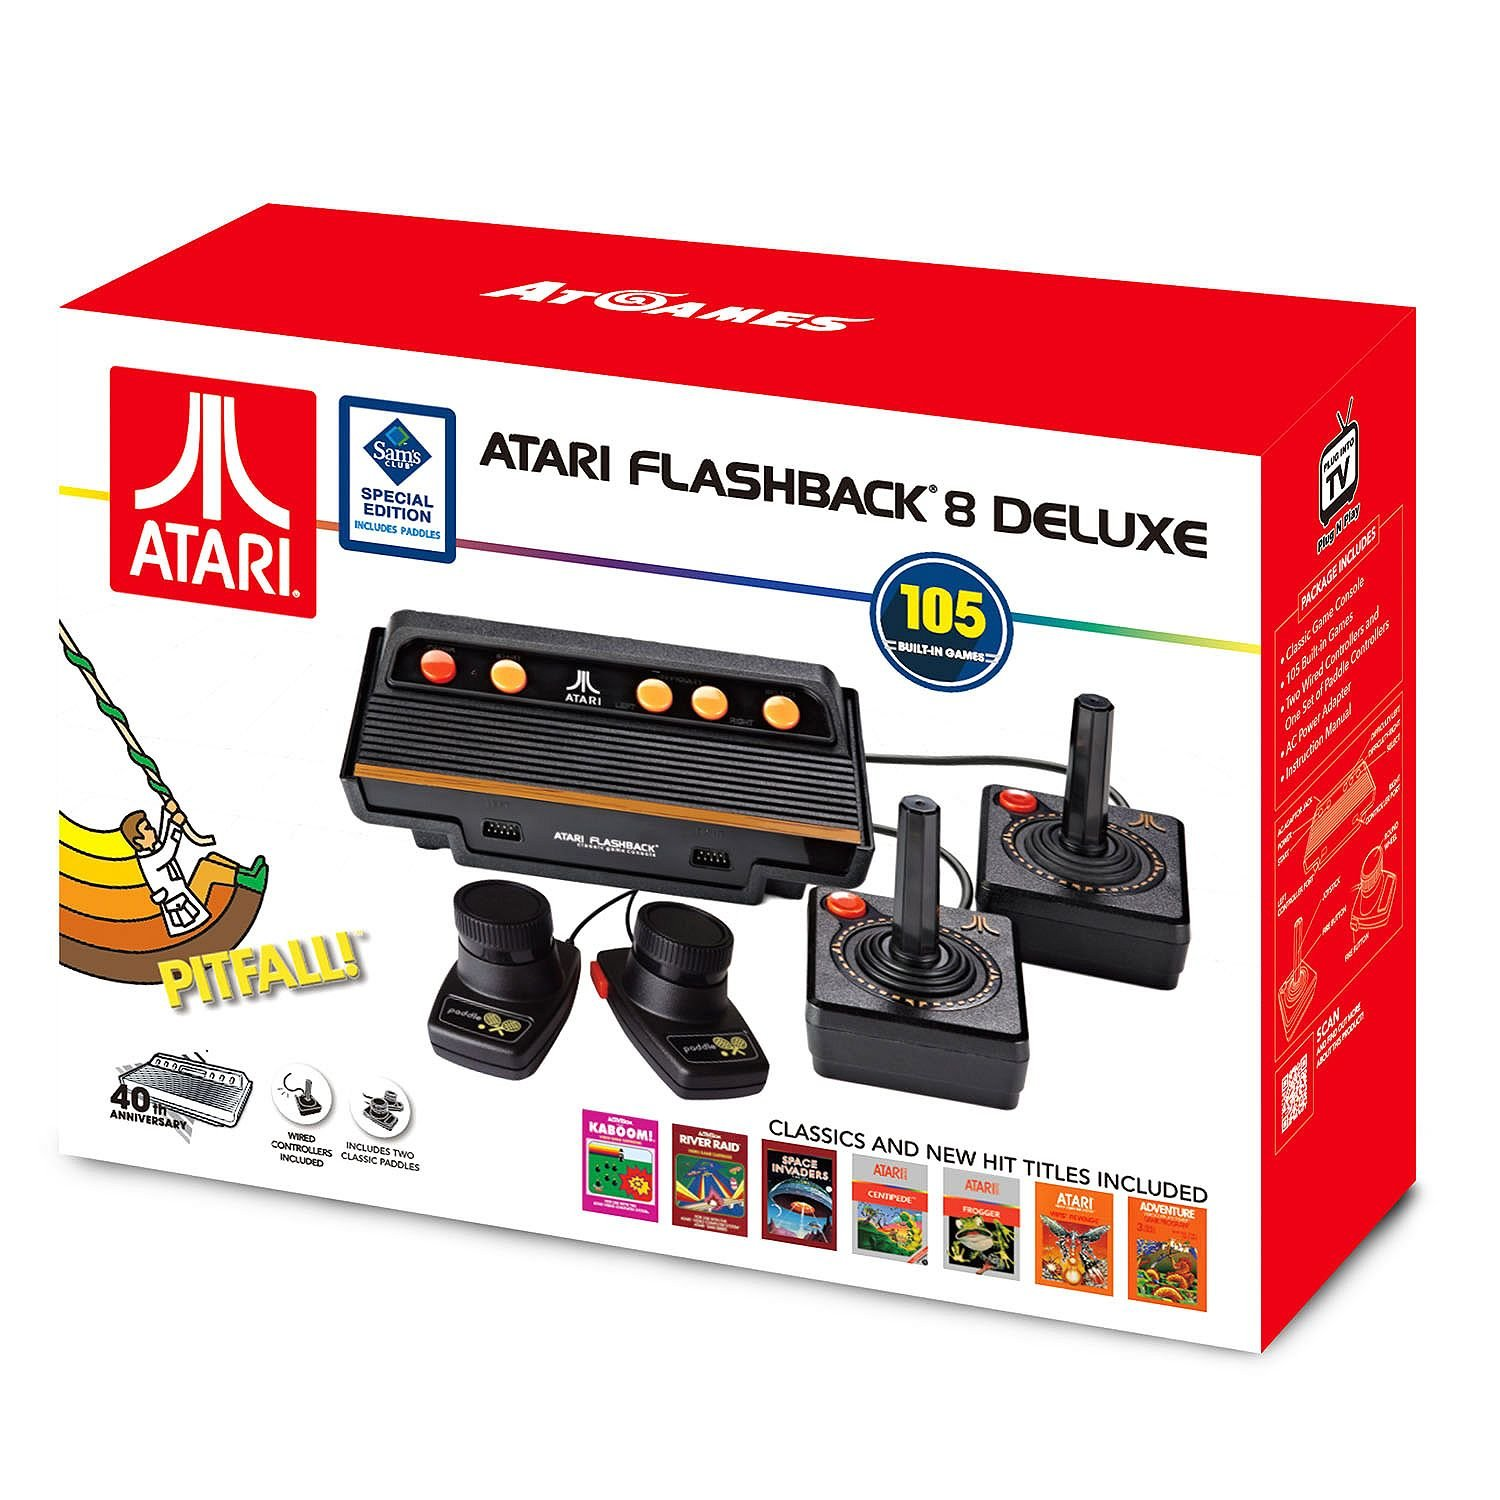 Atari Flashback 8 Deluxe with 105 games - 2 Wired controllers/2 Wired Paddles